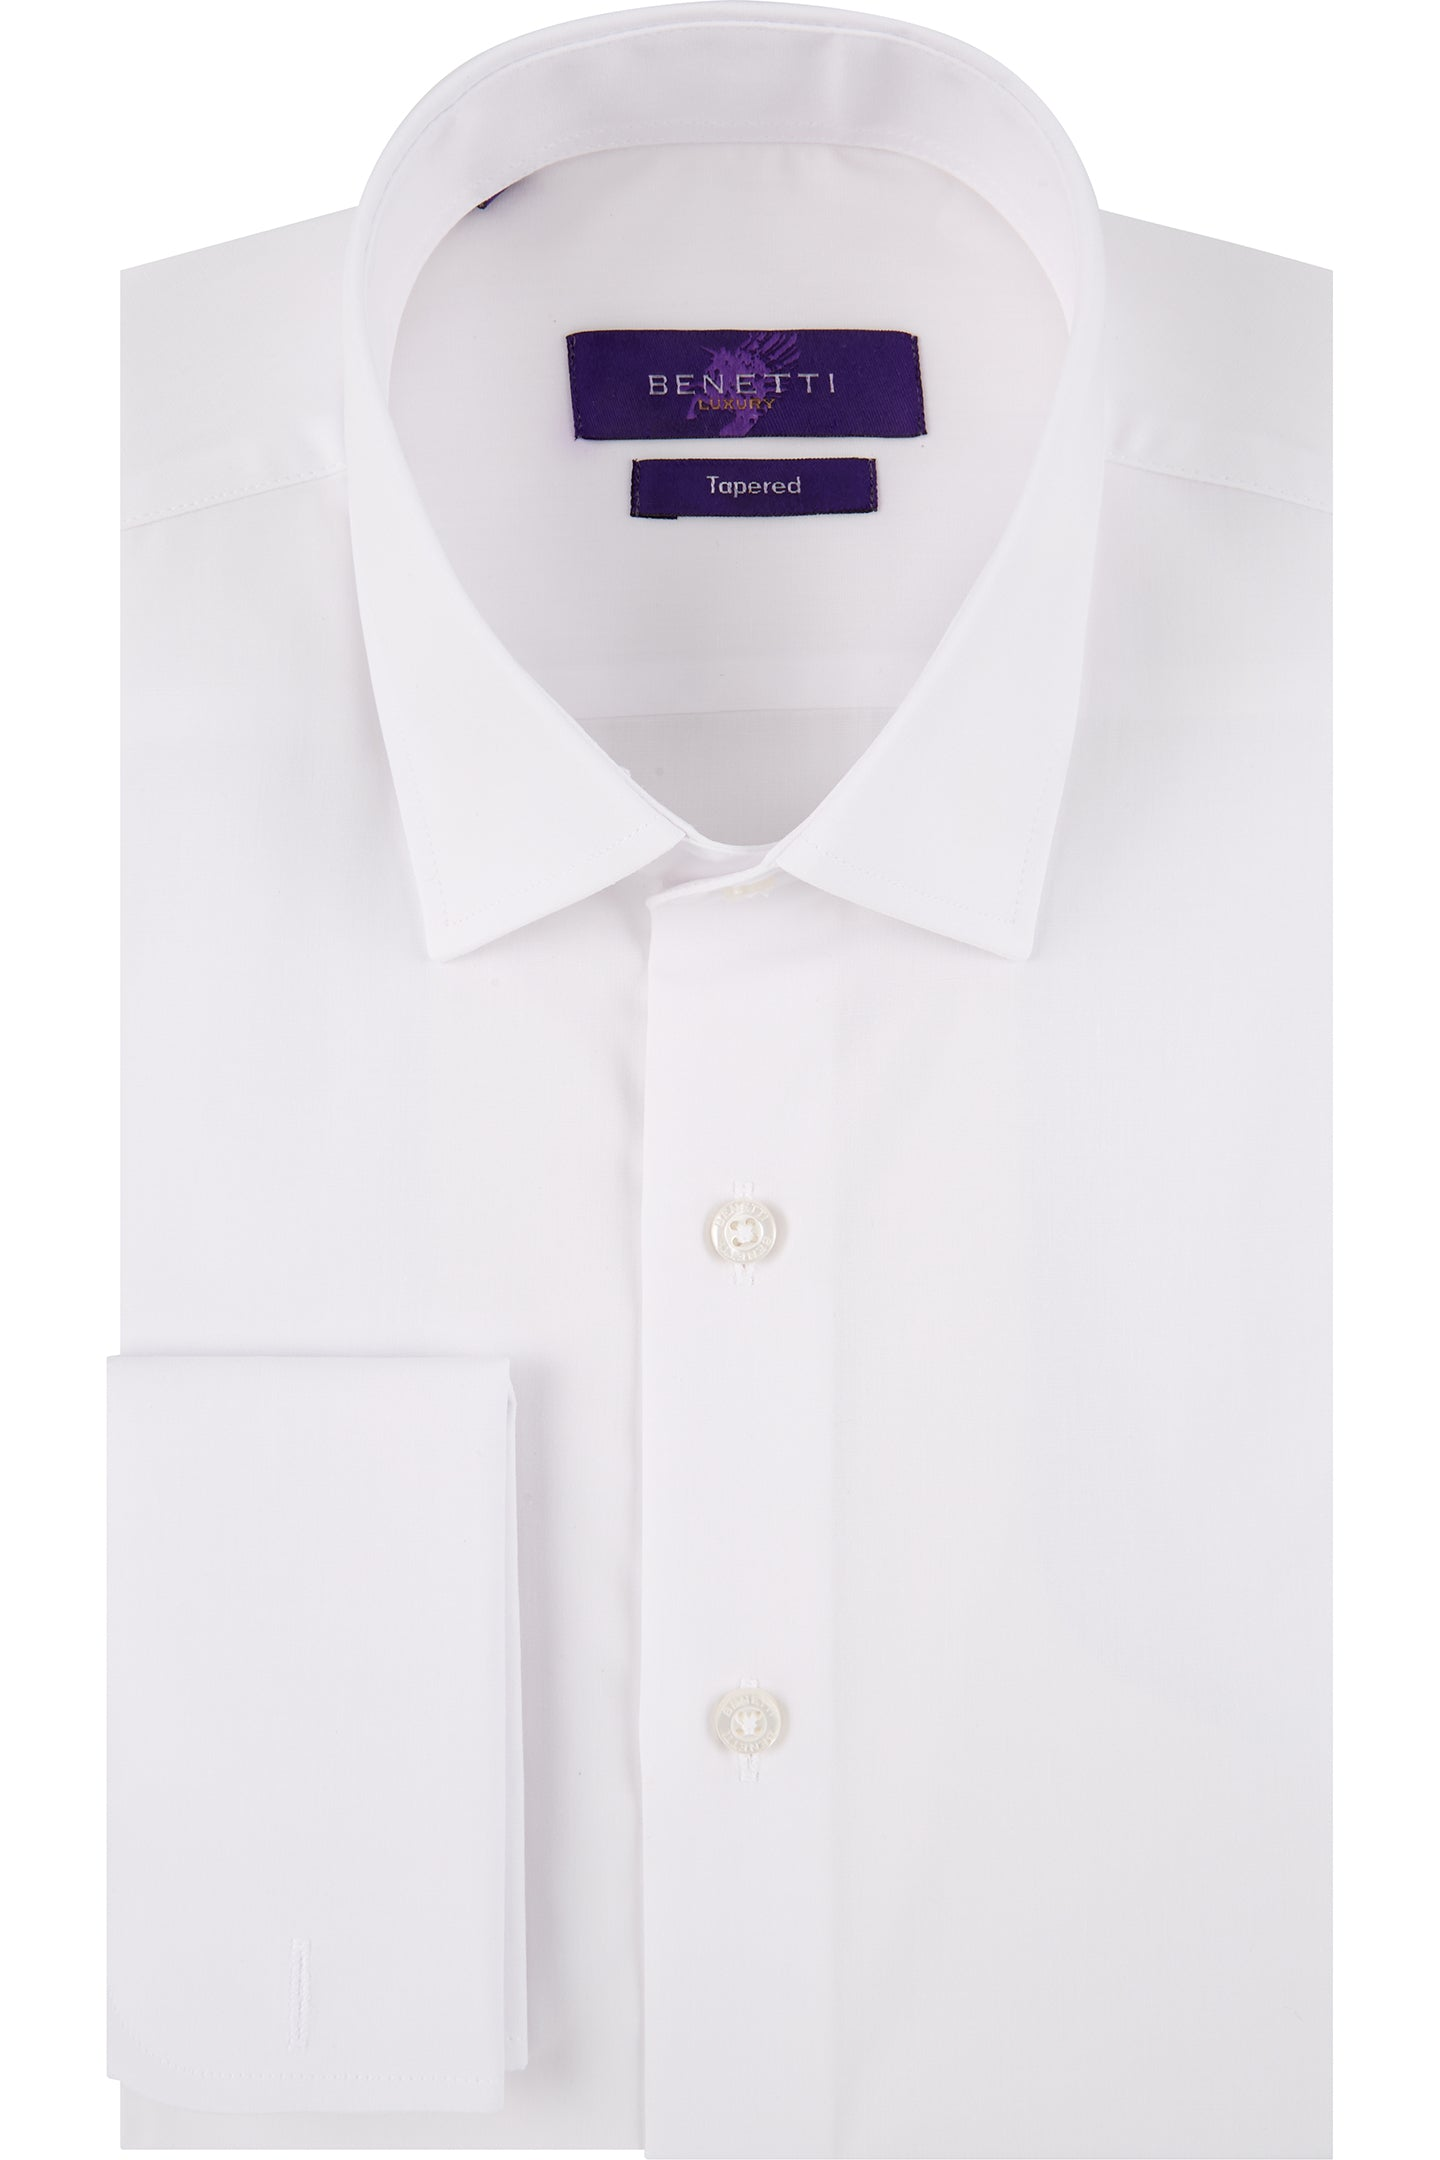 Benetti Double Cuff White Shirt